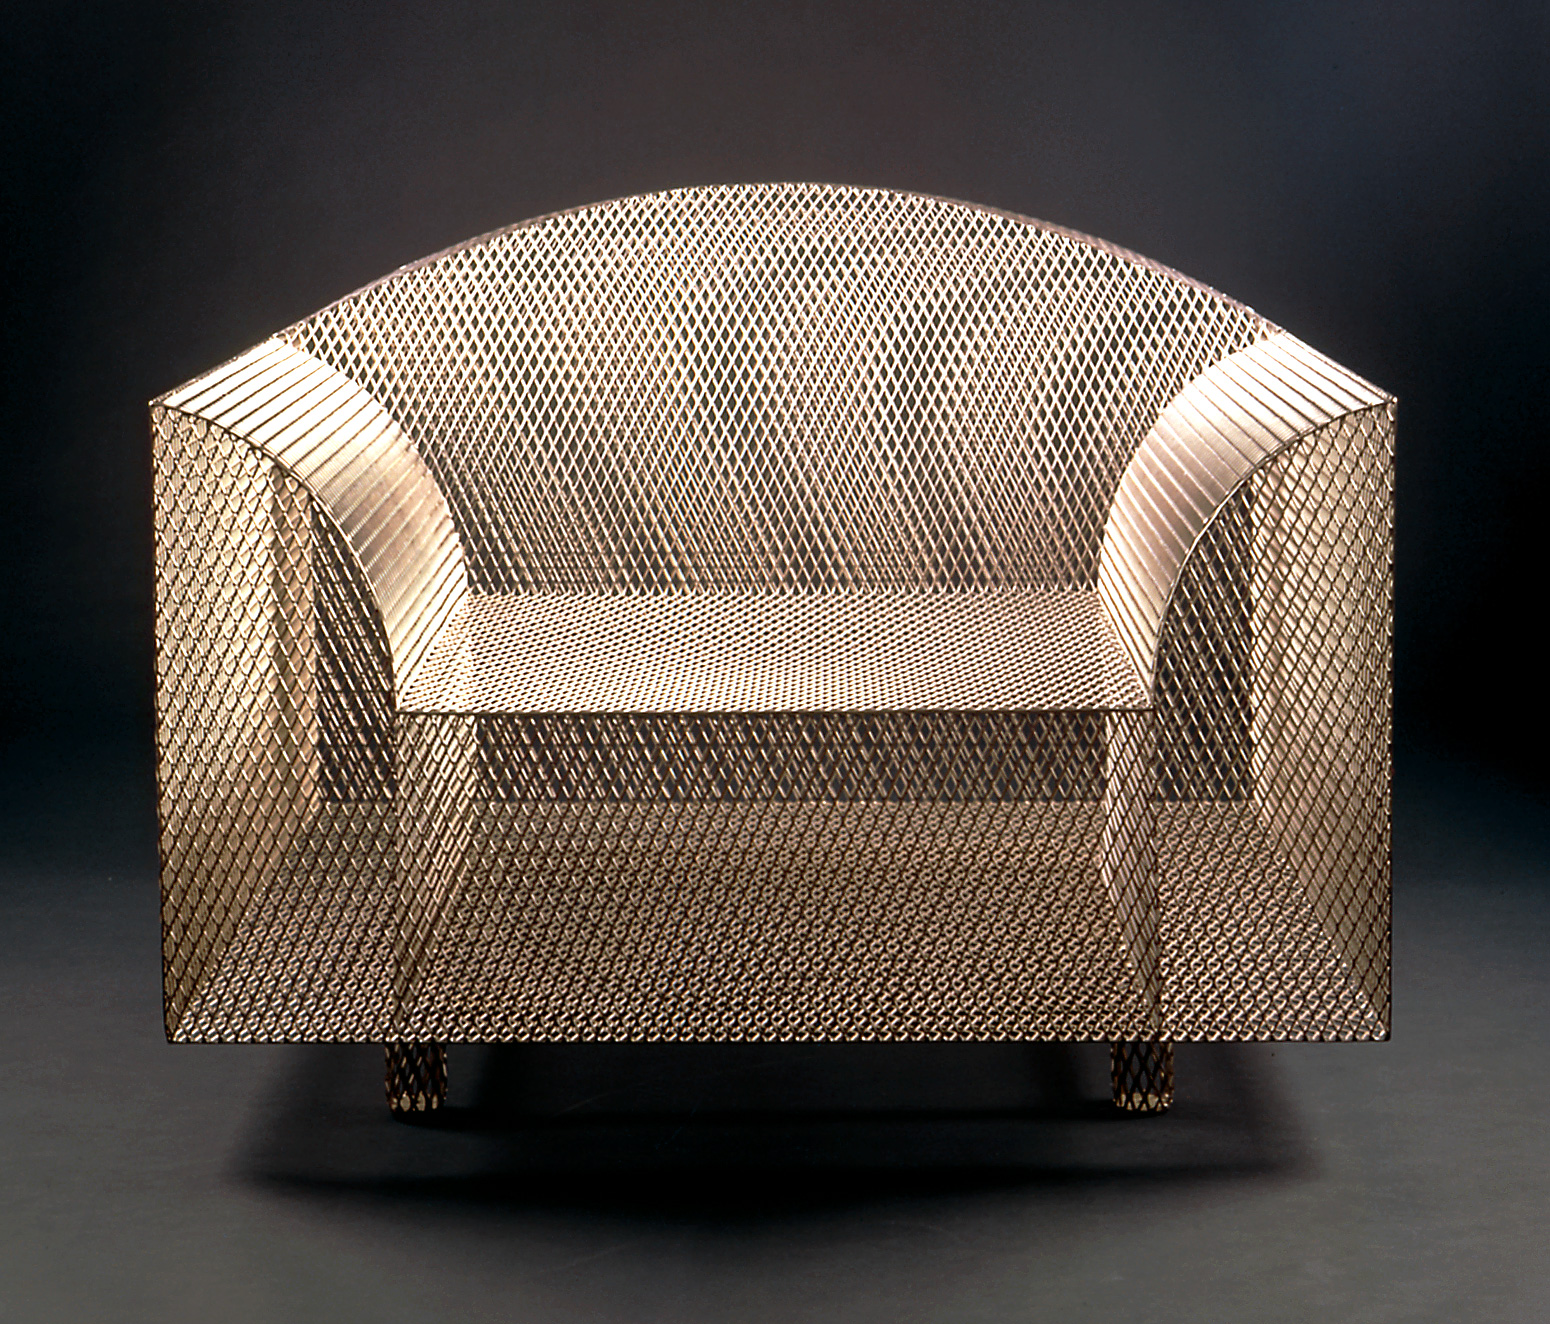 Armchair of metal mesh with rectangular base and curved arms and back.